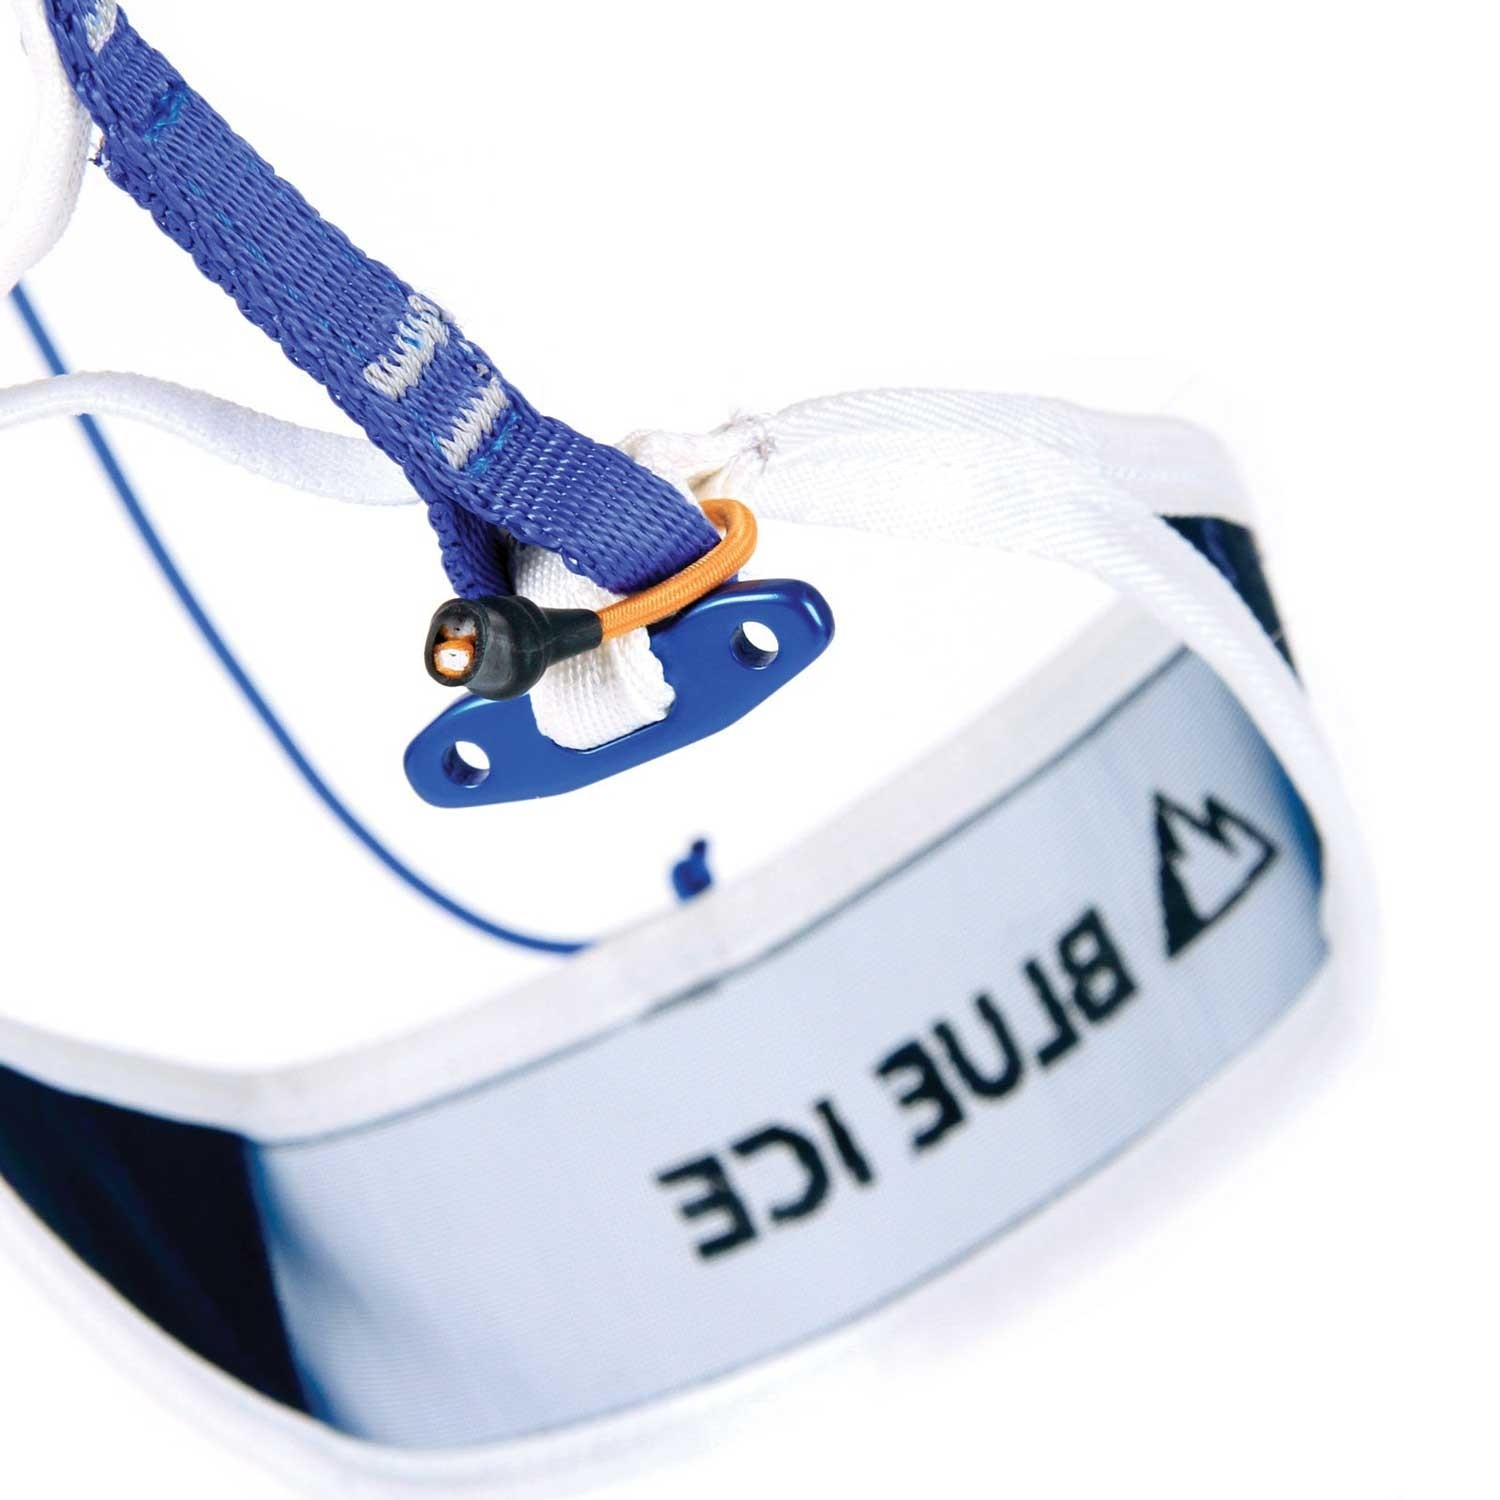 Blue Ice Choucas Pro Climbing Harness - White